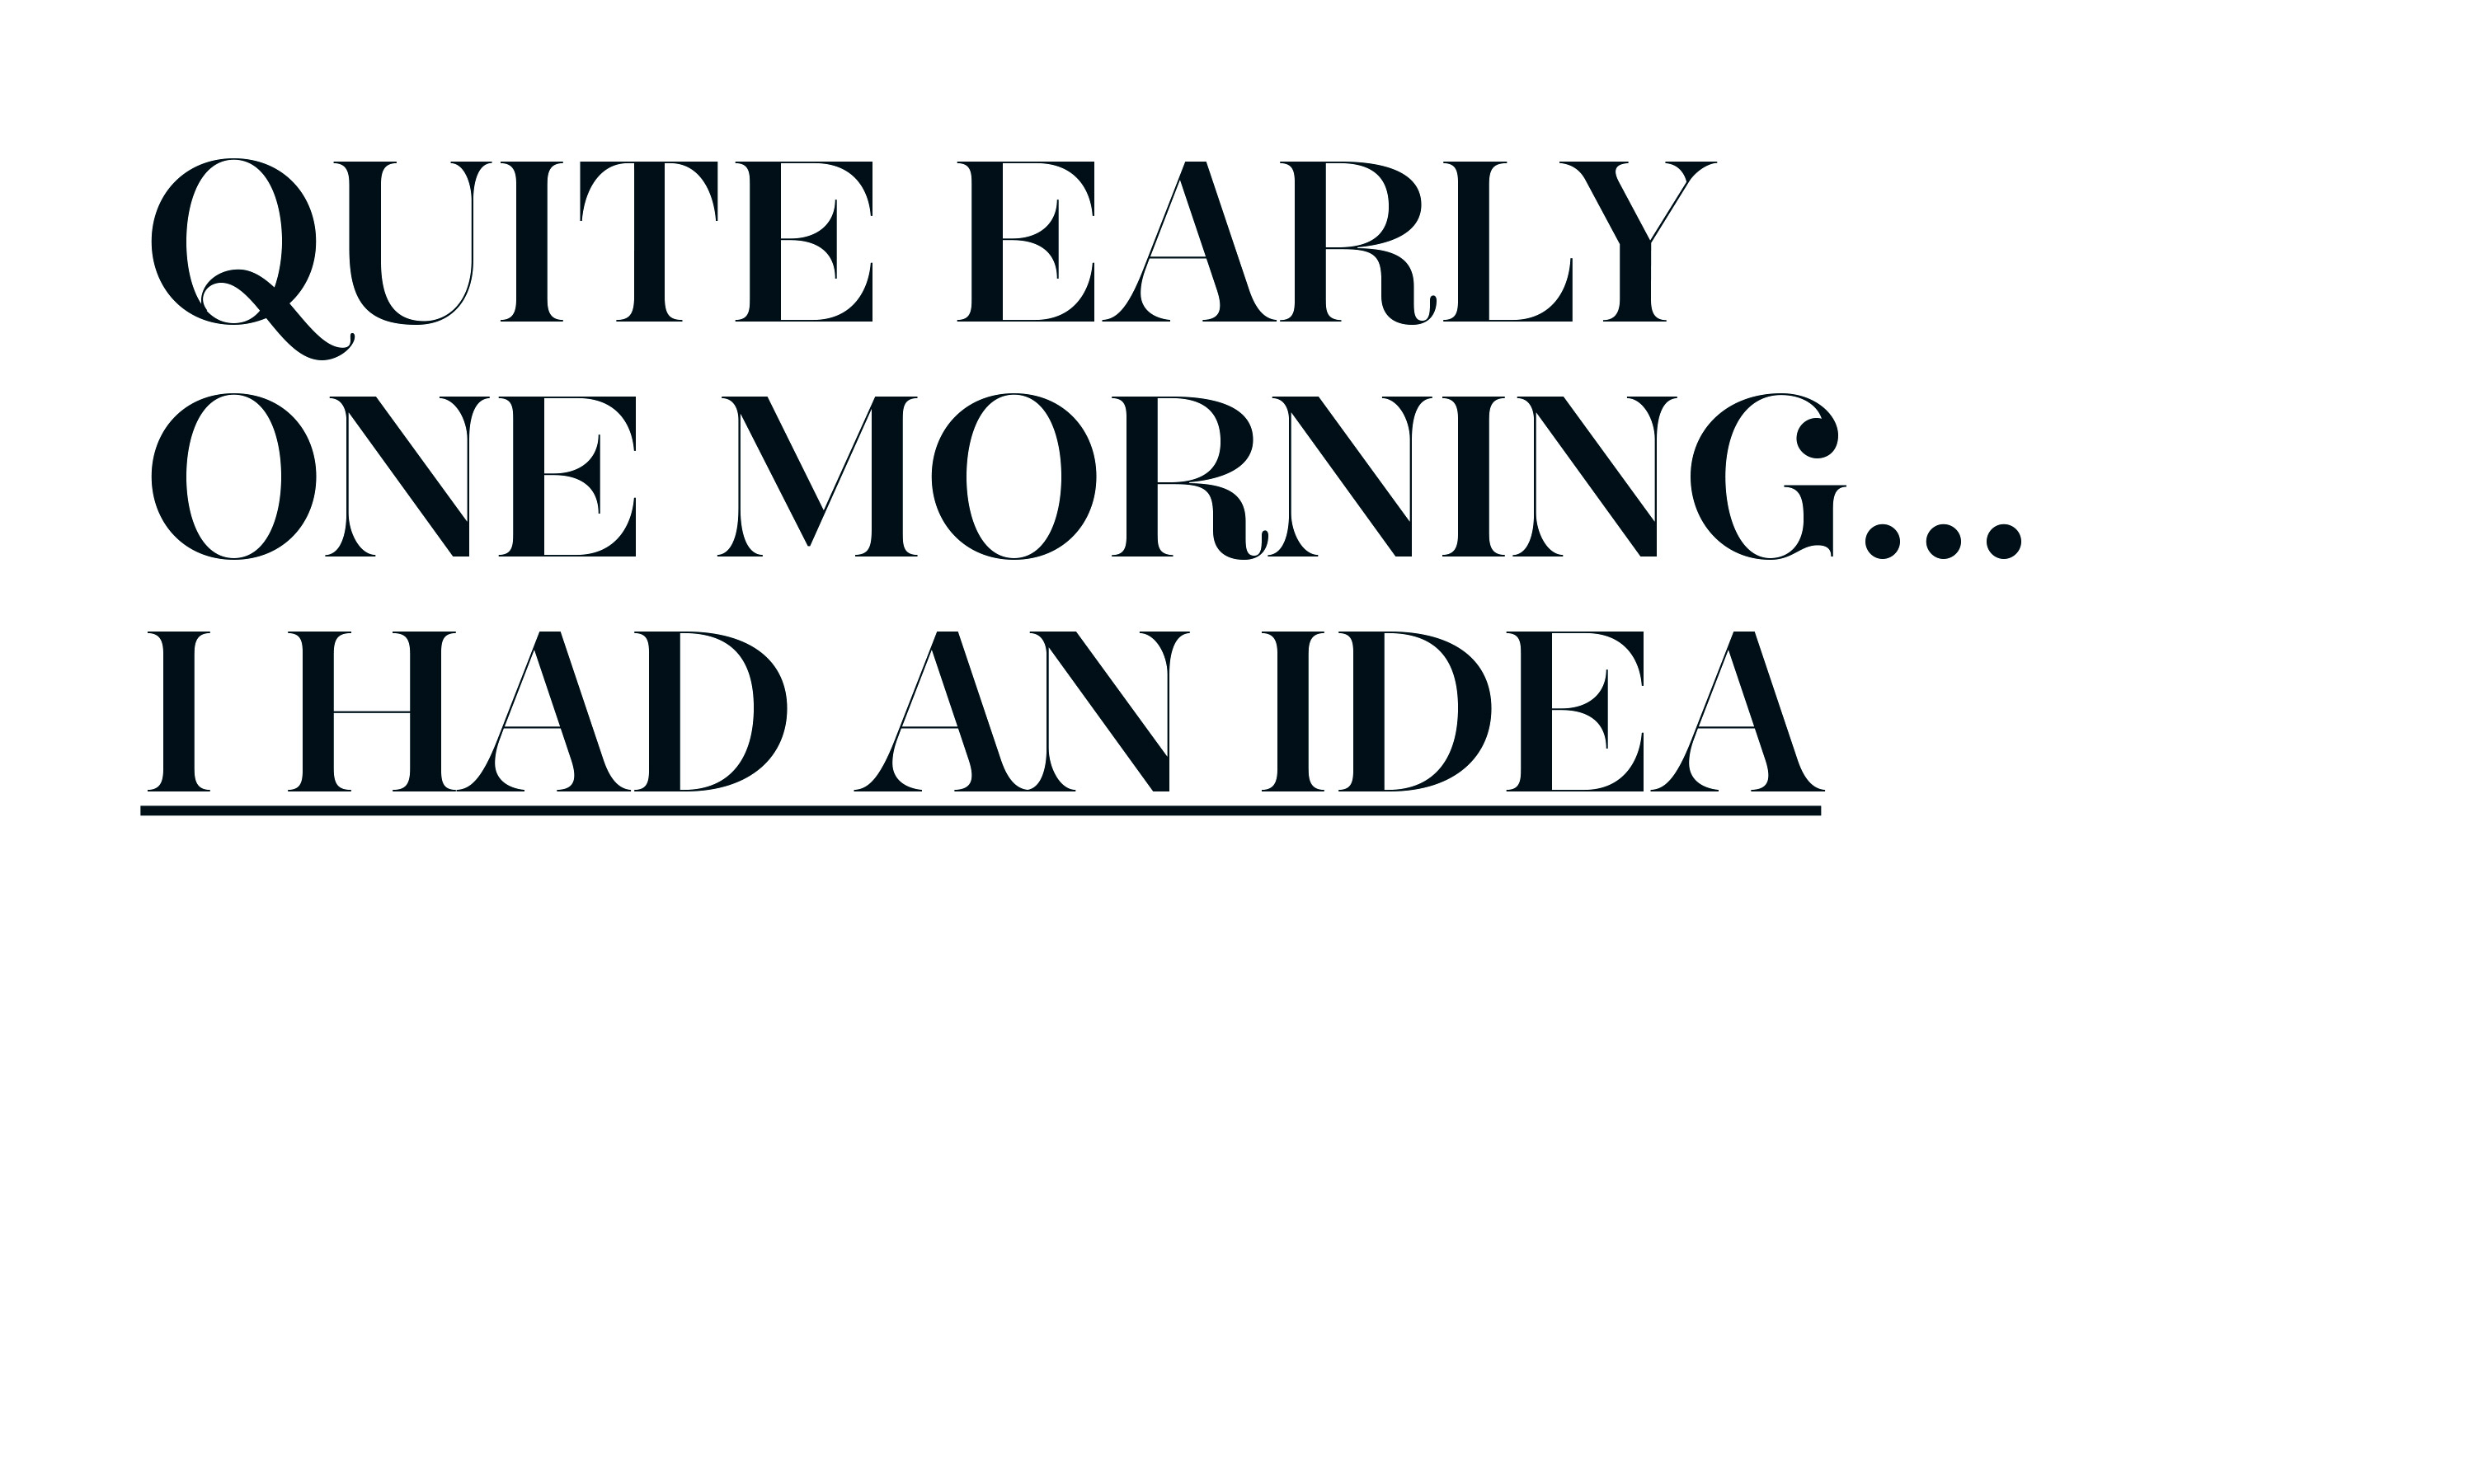 By Dana Robertson Creative Director and Founder of Neon. Quite Early One Morning I Had An Idea brand mark example – demonstrating the breath of the language idea of adding relevant and witty copy to the company name. Part of the naming and identity project for Quite Early One Morning – Idea, art direction and design by Neon Design & Branding Consultancy www.neon-creative.com